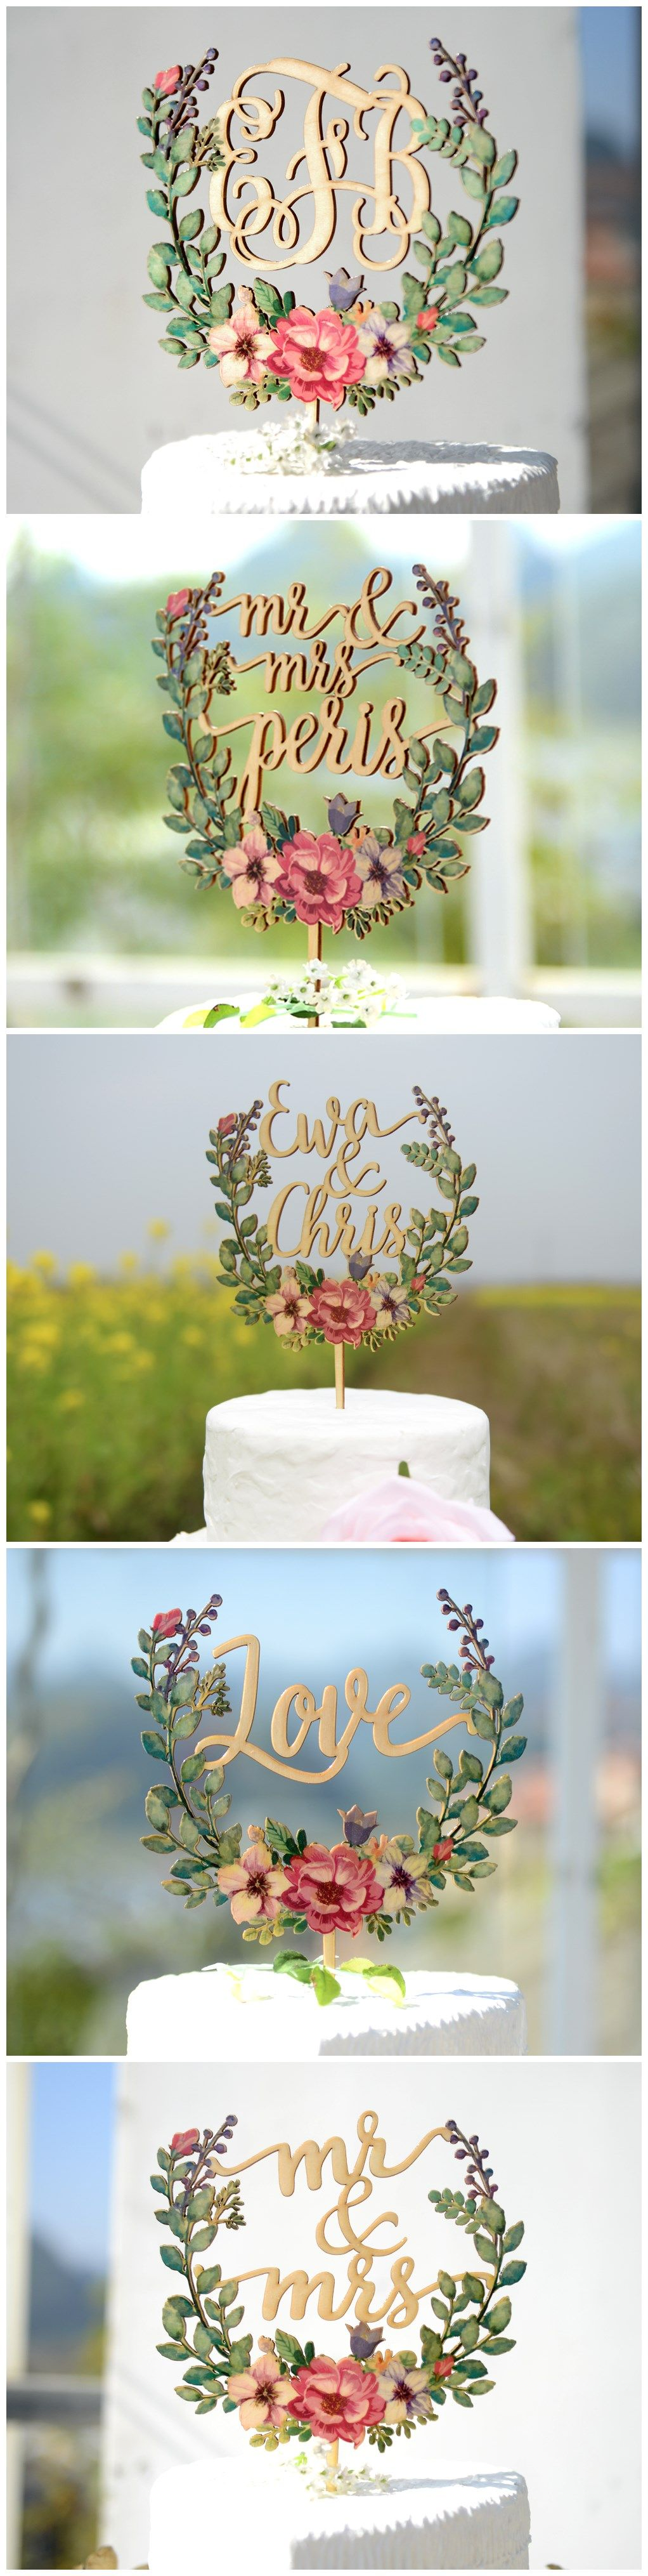 Bridenew created personalized wedding cake toppers printed with